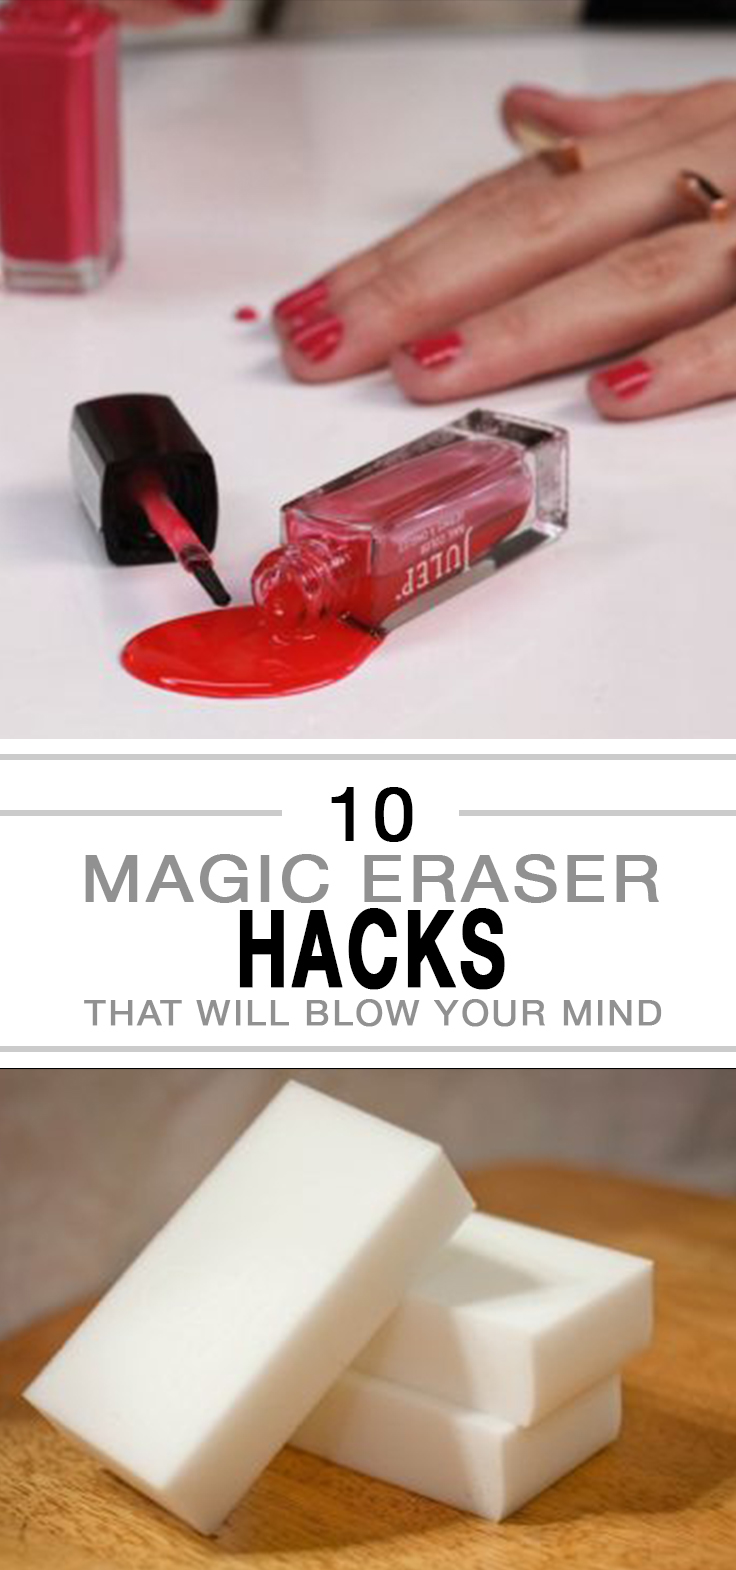 Magic erasers, magic eraser hacks, things to do with magic erasers, popular pin, cleaning tips, cleaning hacks, DIY cleaning, DIY home